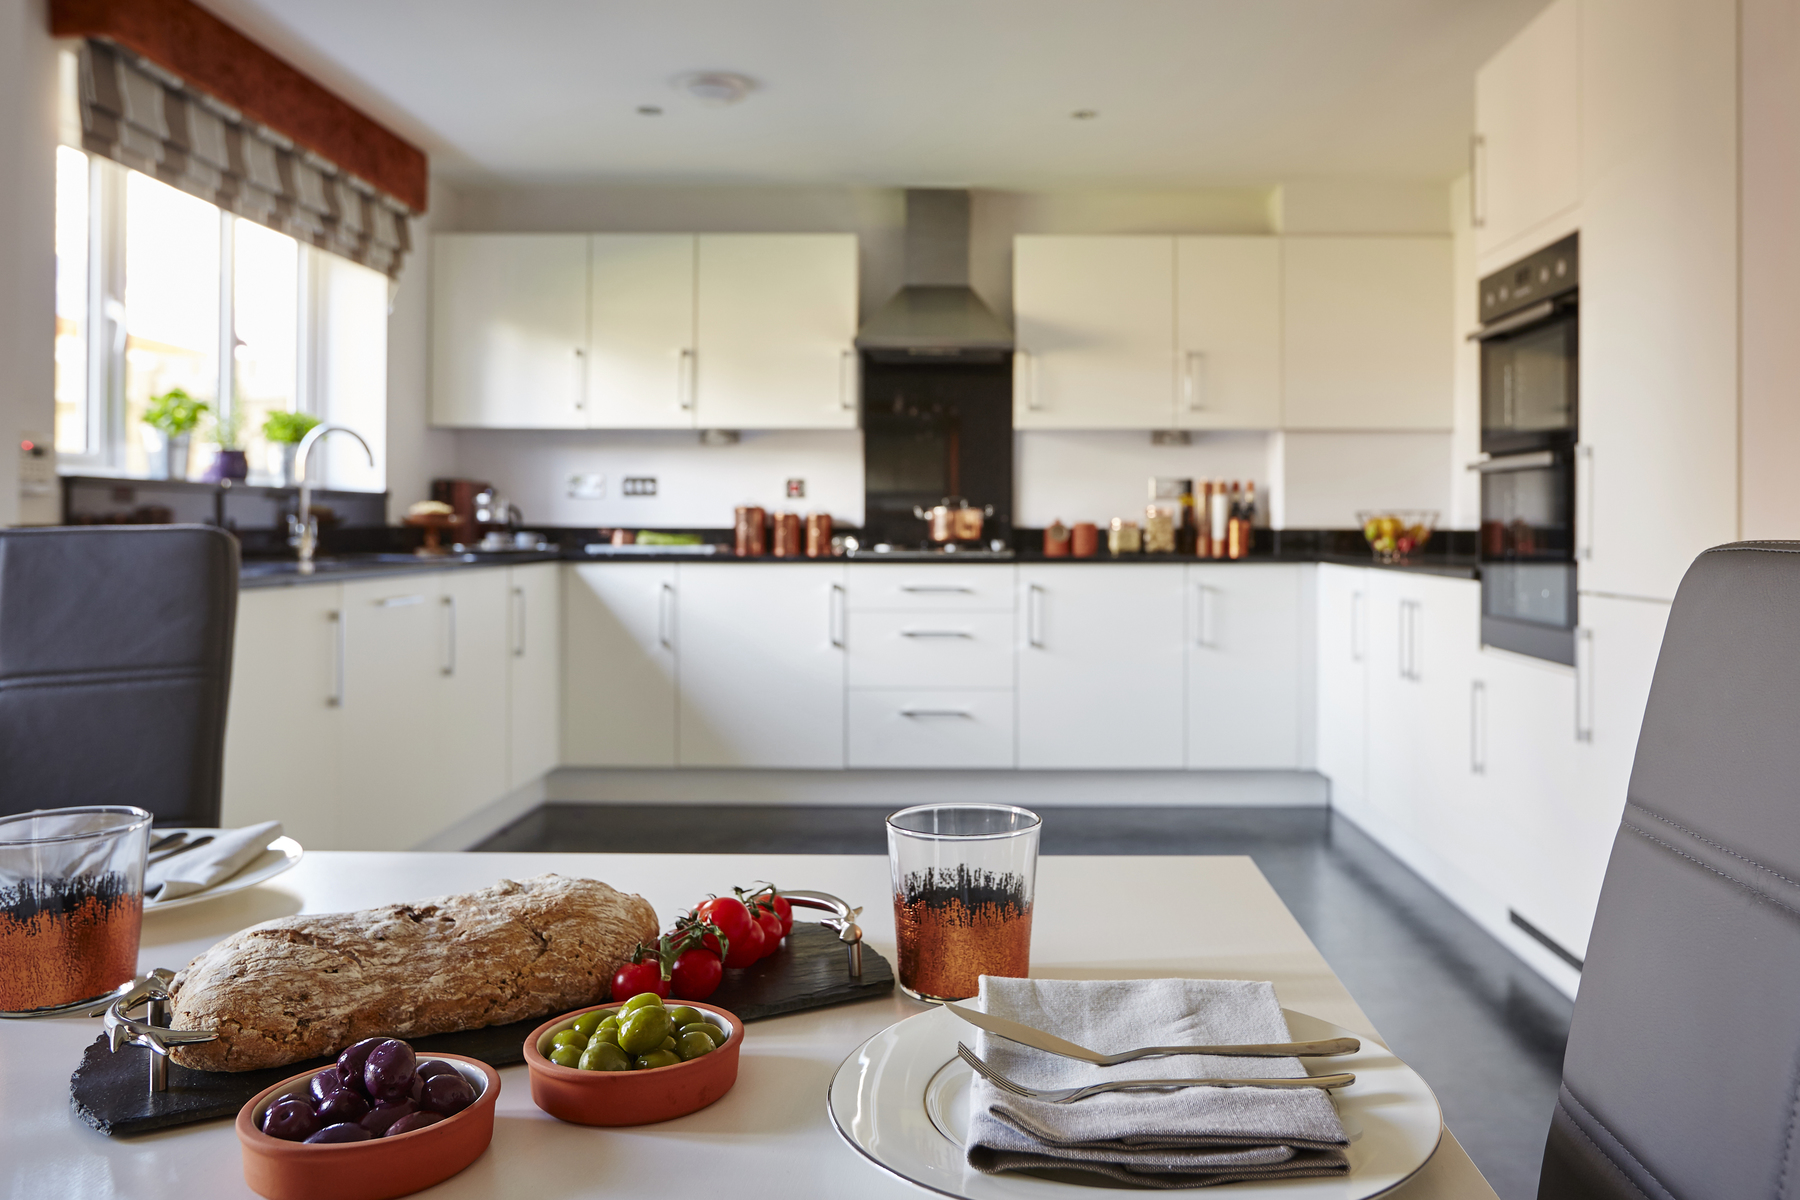 tw_wmids_bowbrook_hartlebury_pd411_haddenham_kitchen_2